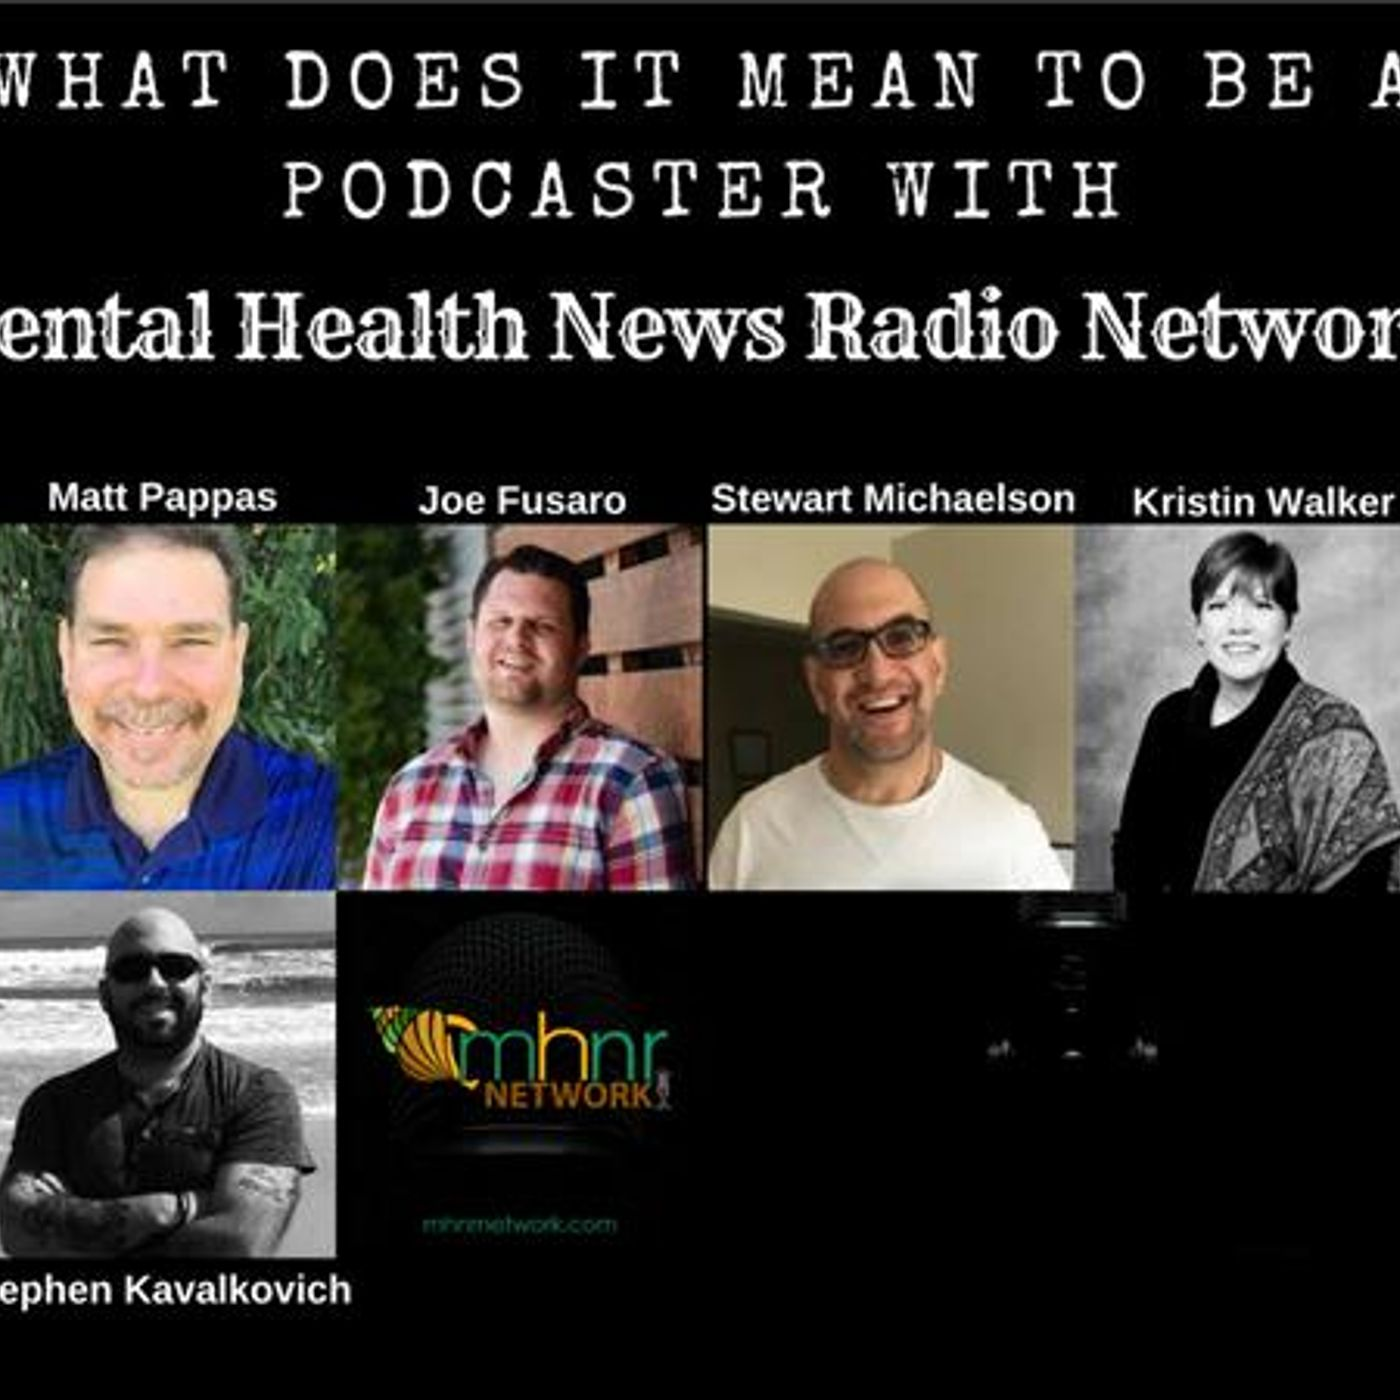 Mental Health News Radio - What Does It Mean To Be A Podcaster With Mental Health News Radio Network?